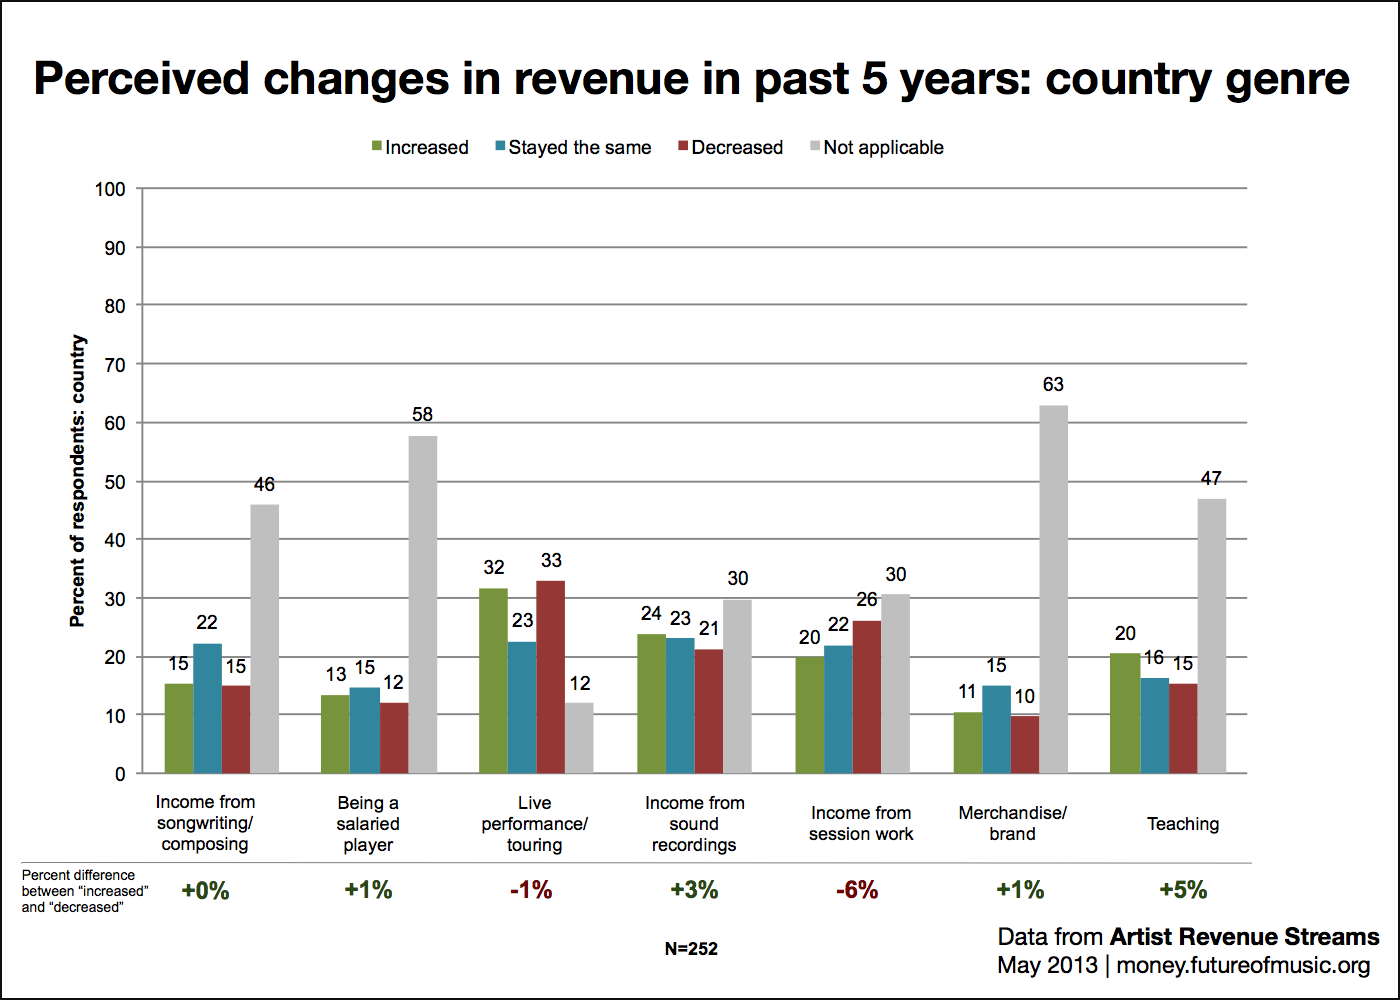 Perceived changes in revenue: country